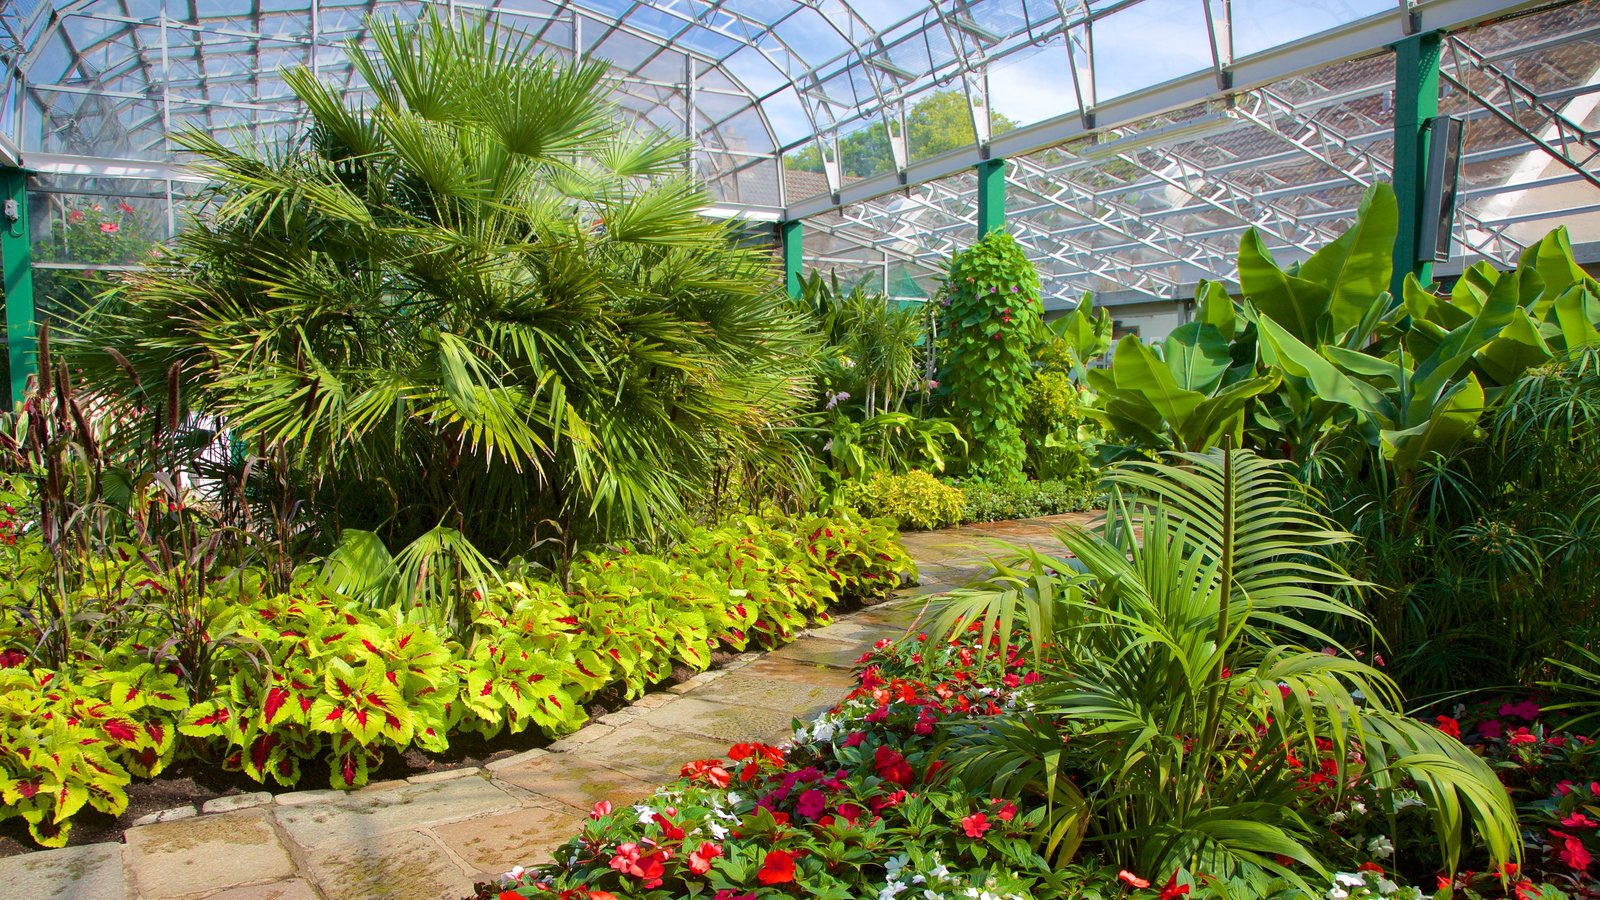 Duthie Park Winter Gardens showing interior views and a park